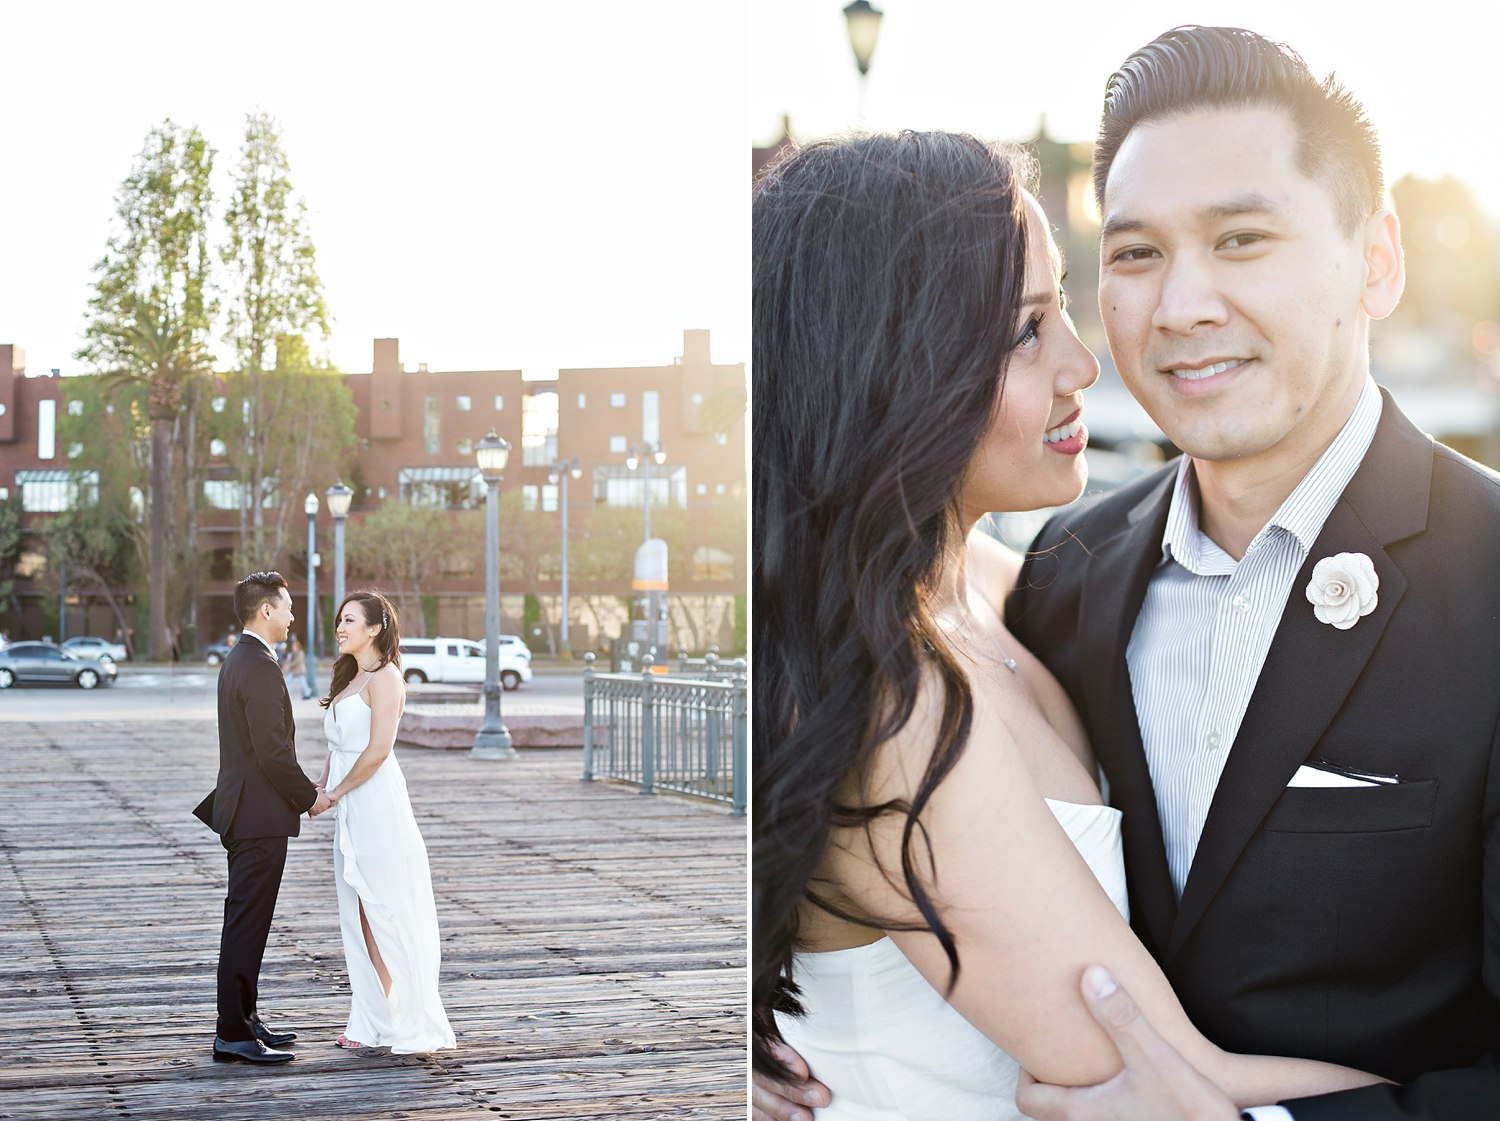 Pier 7 San Francisco Engagement Session - Lien and Phil_015.jpg